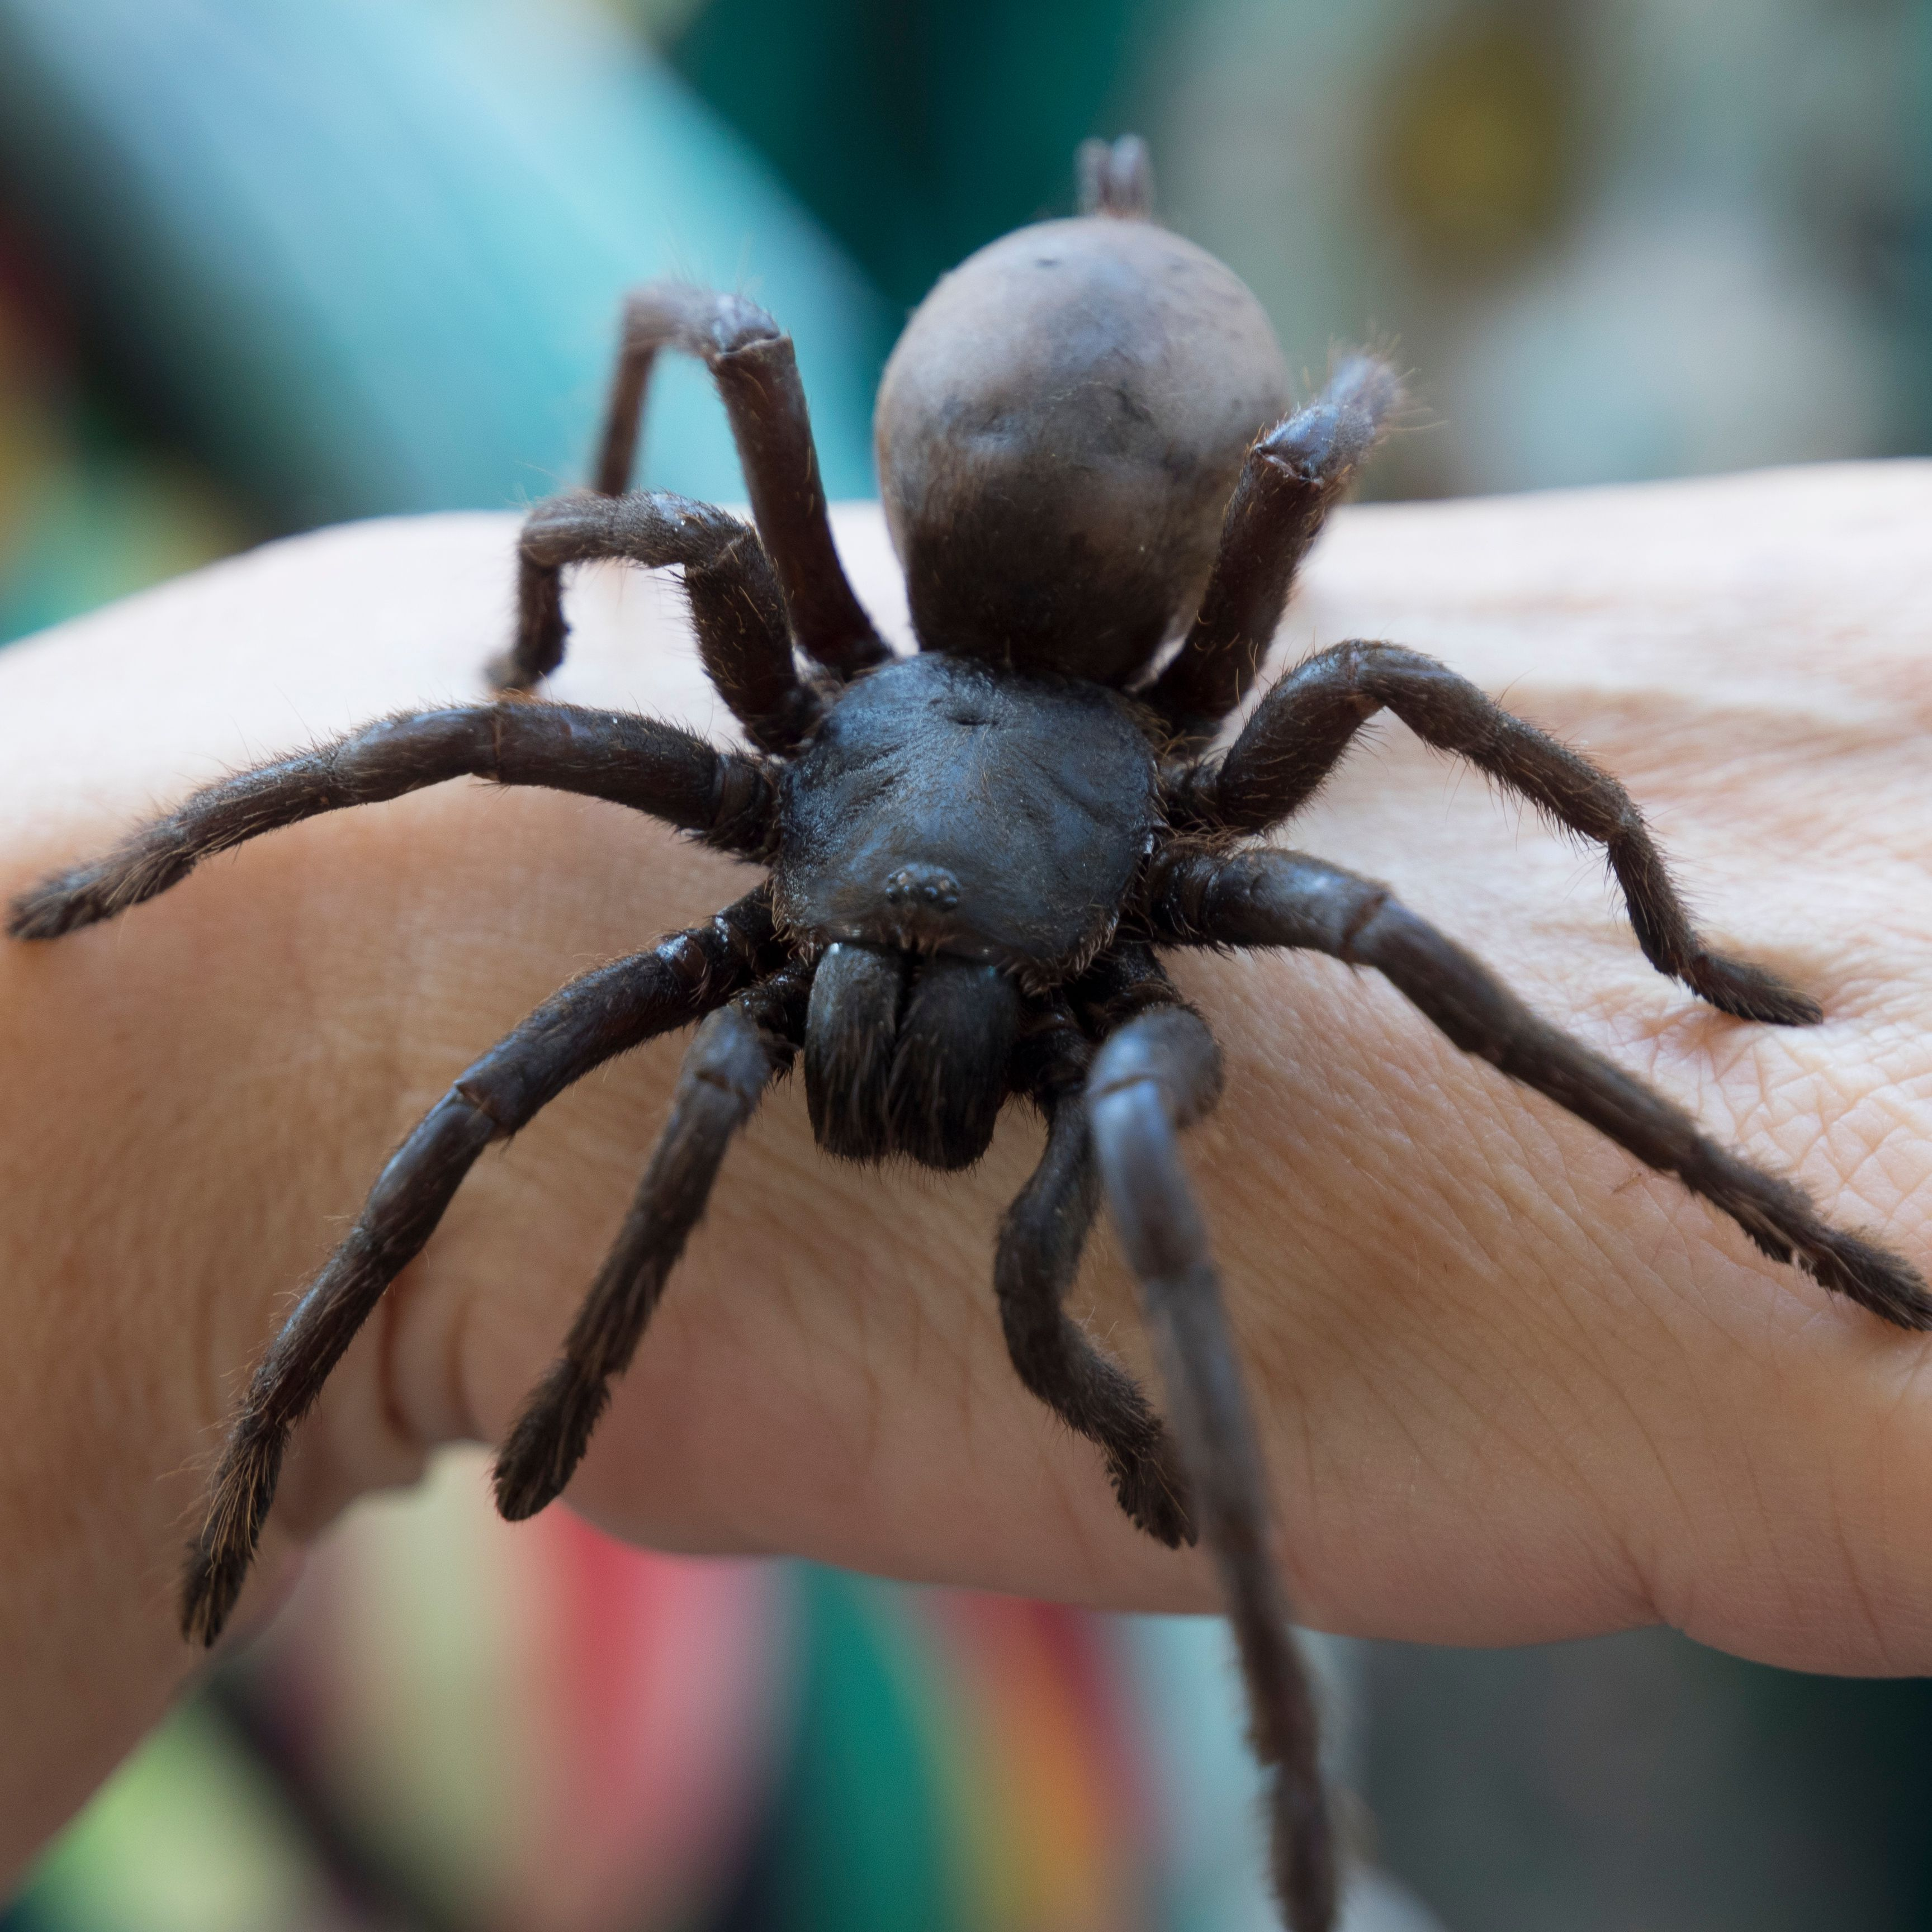 10 Biggest Spiders in the World